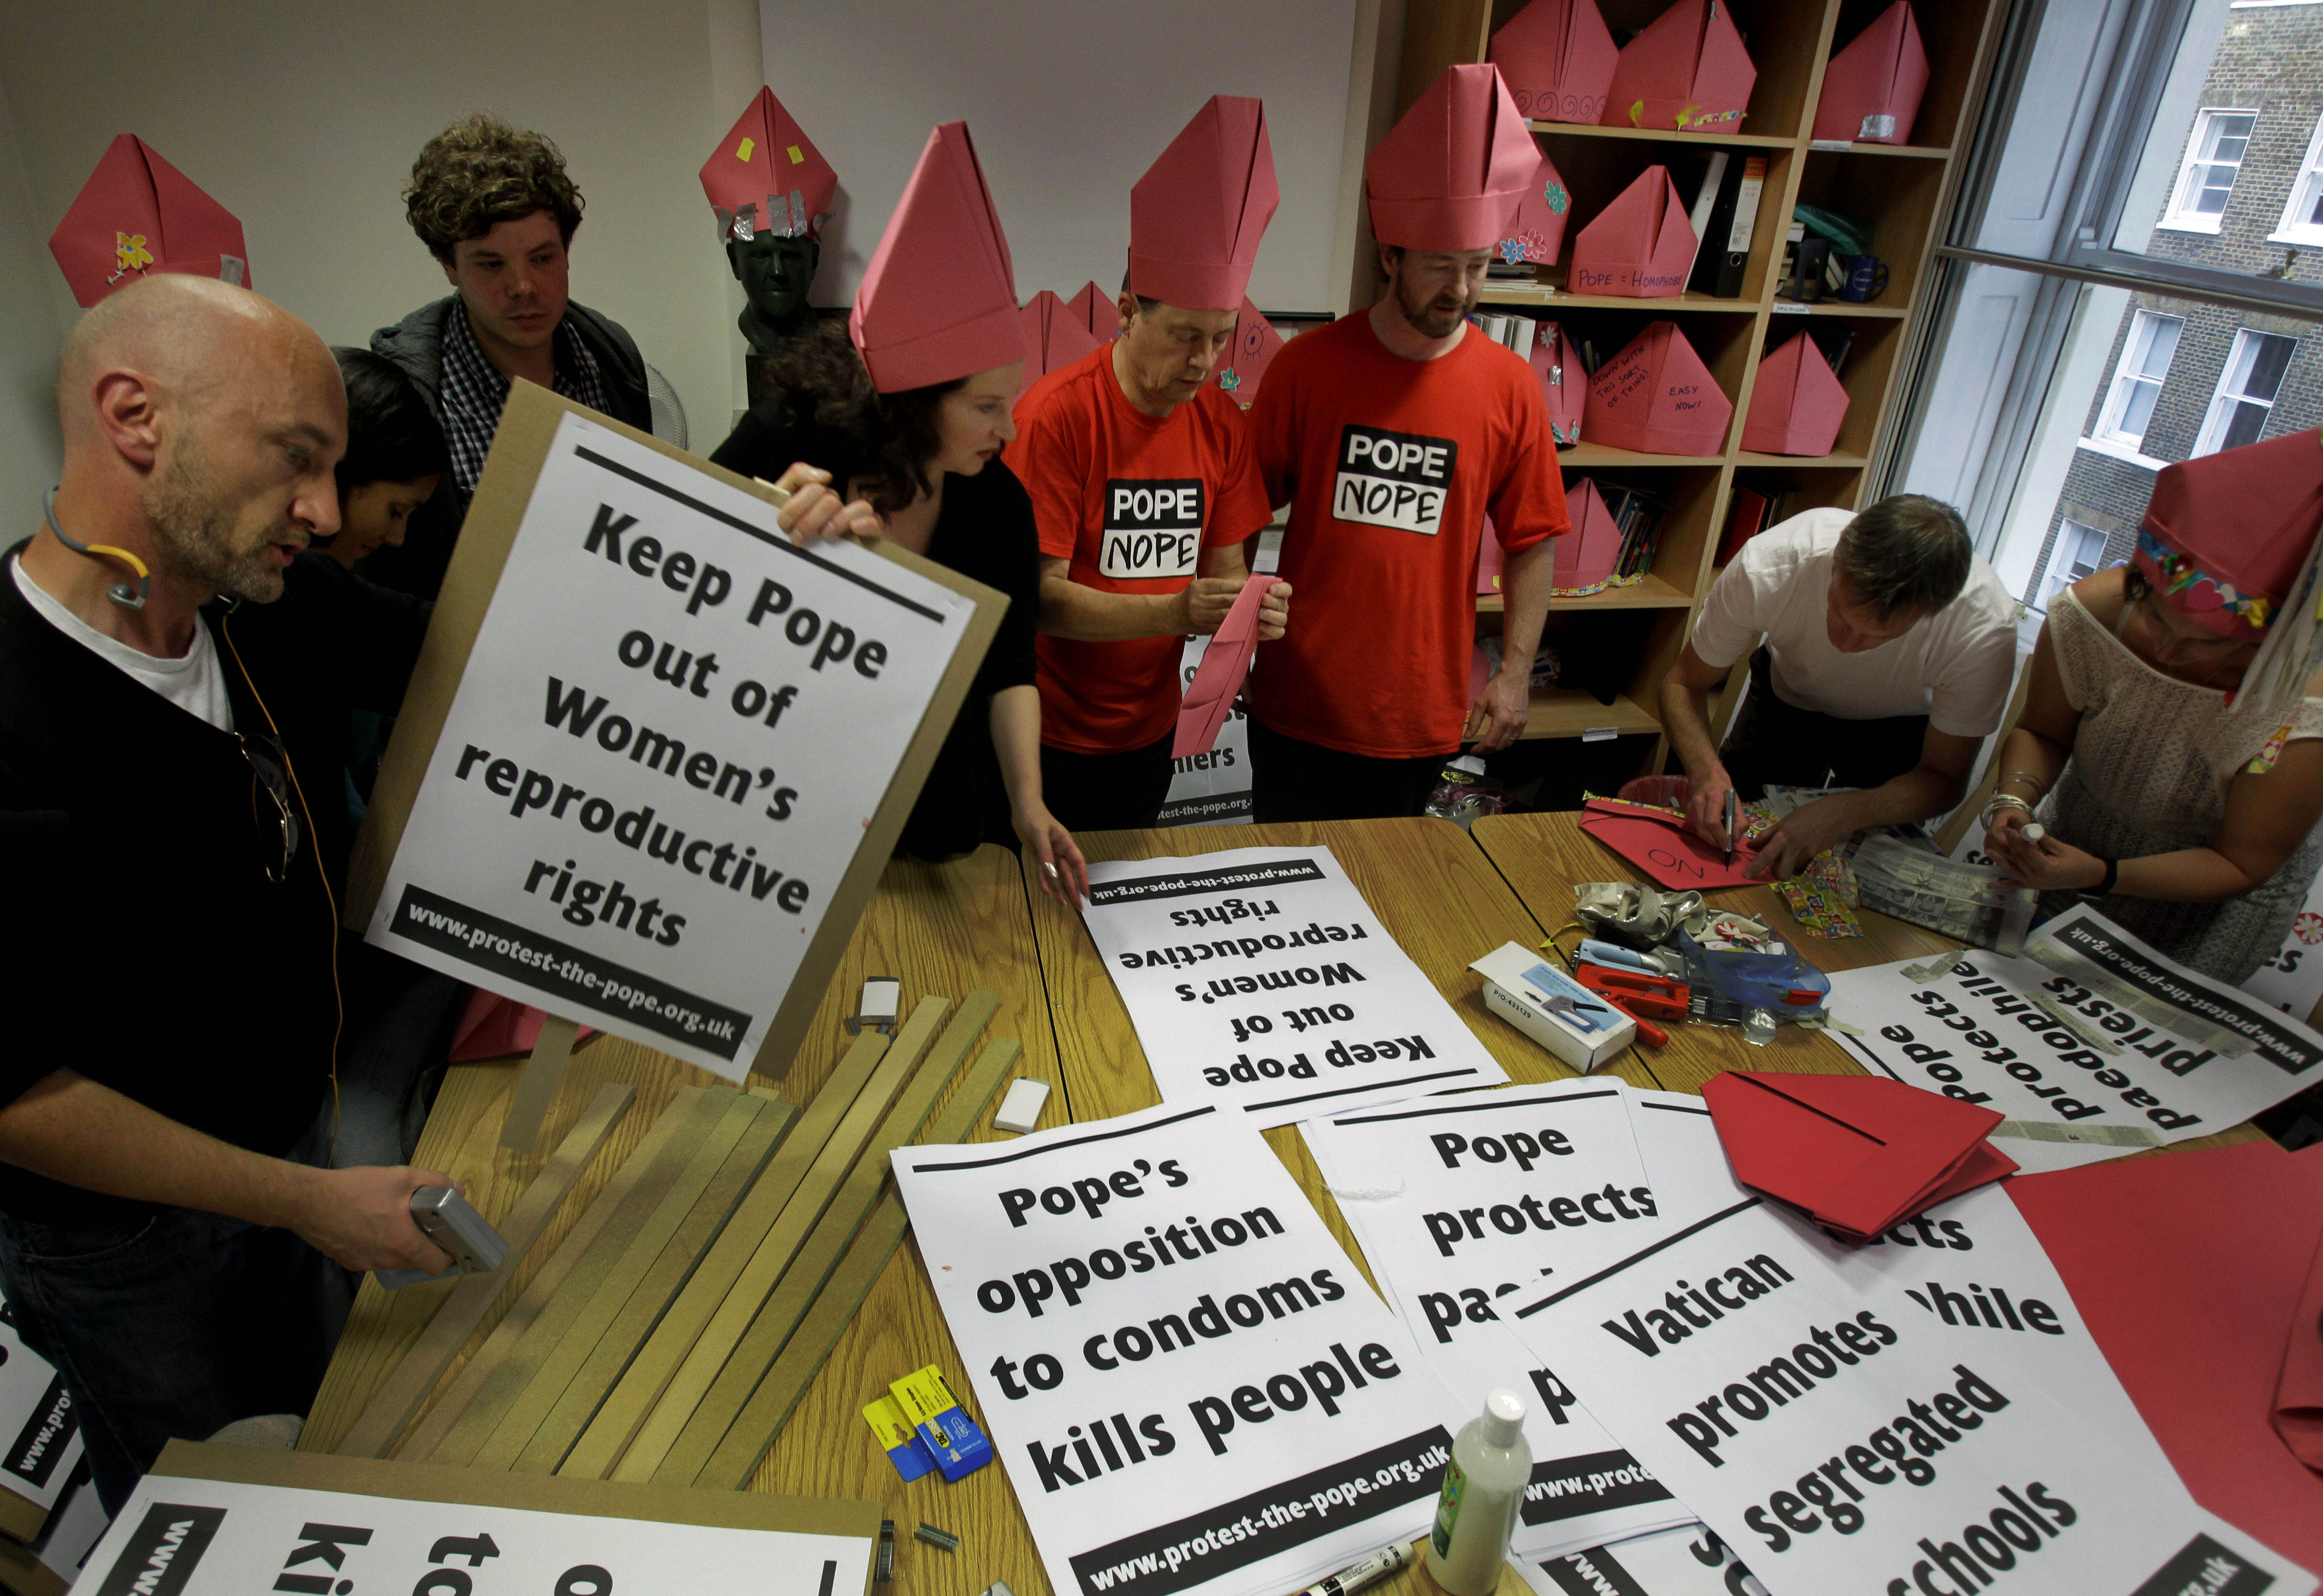 Members of the Protest the Pope campaign make placards in London on Wednesday for use at the march against the Pope's visit to the UK on Sep. 16.